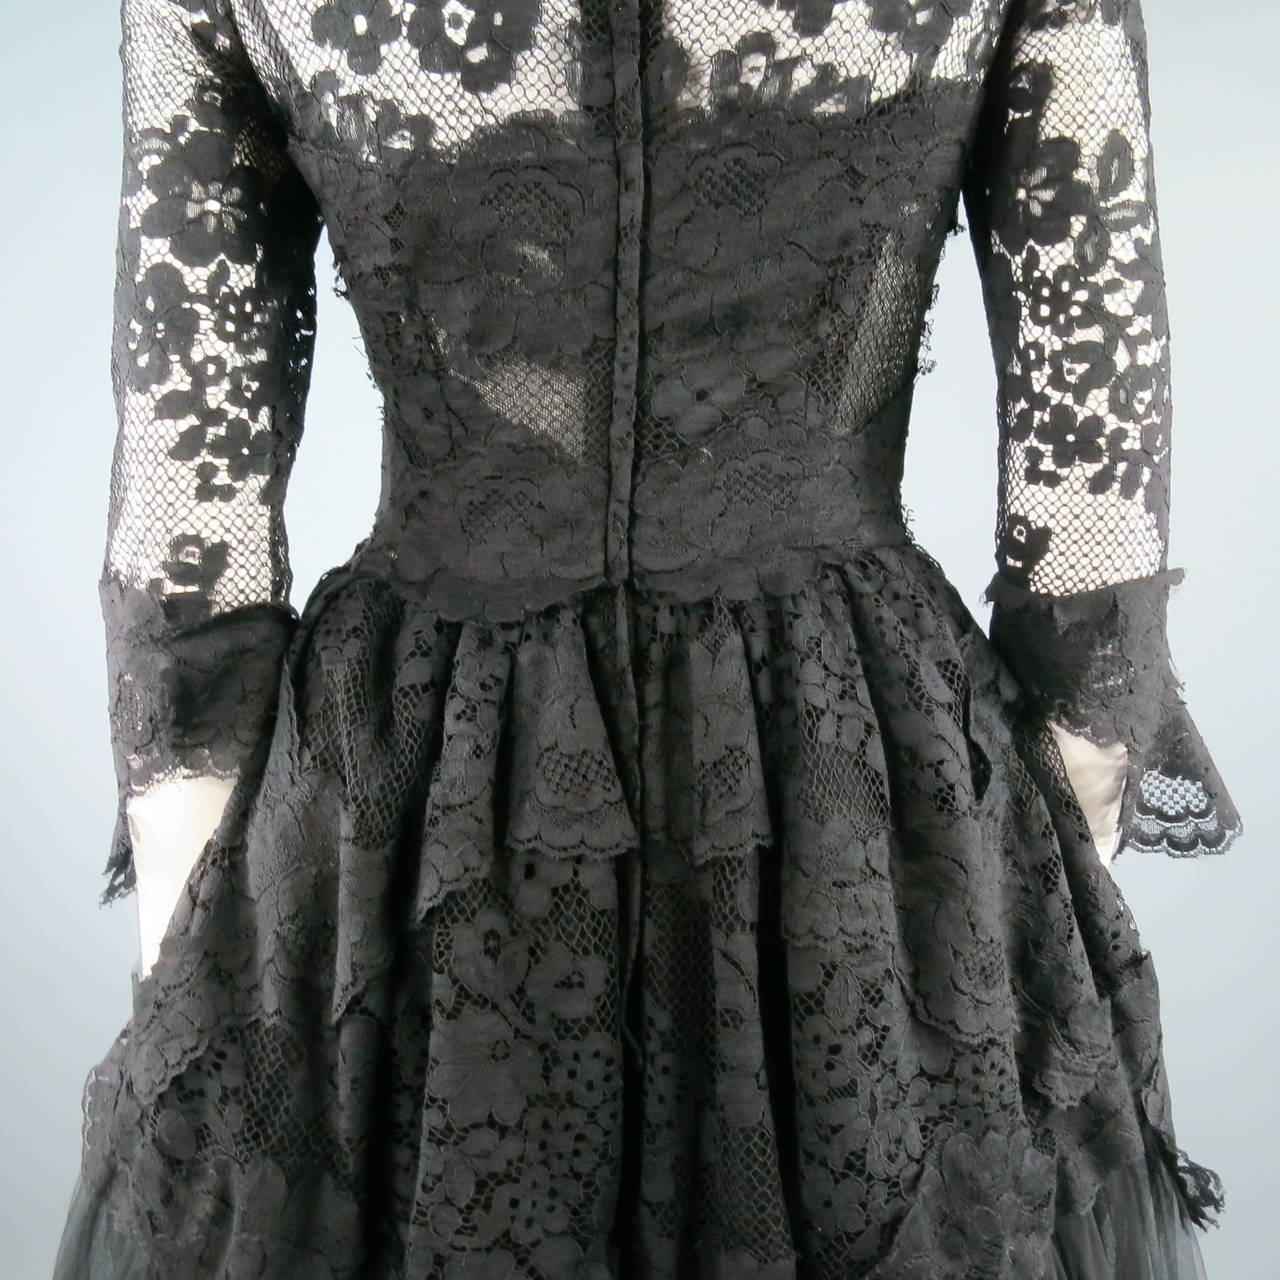 DOLCE & GABBANA Size 6 Black Lace Cocktail Dress For Sale 3